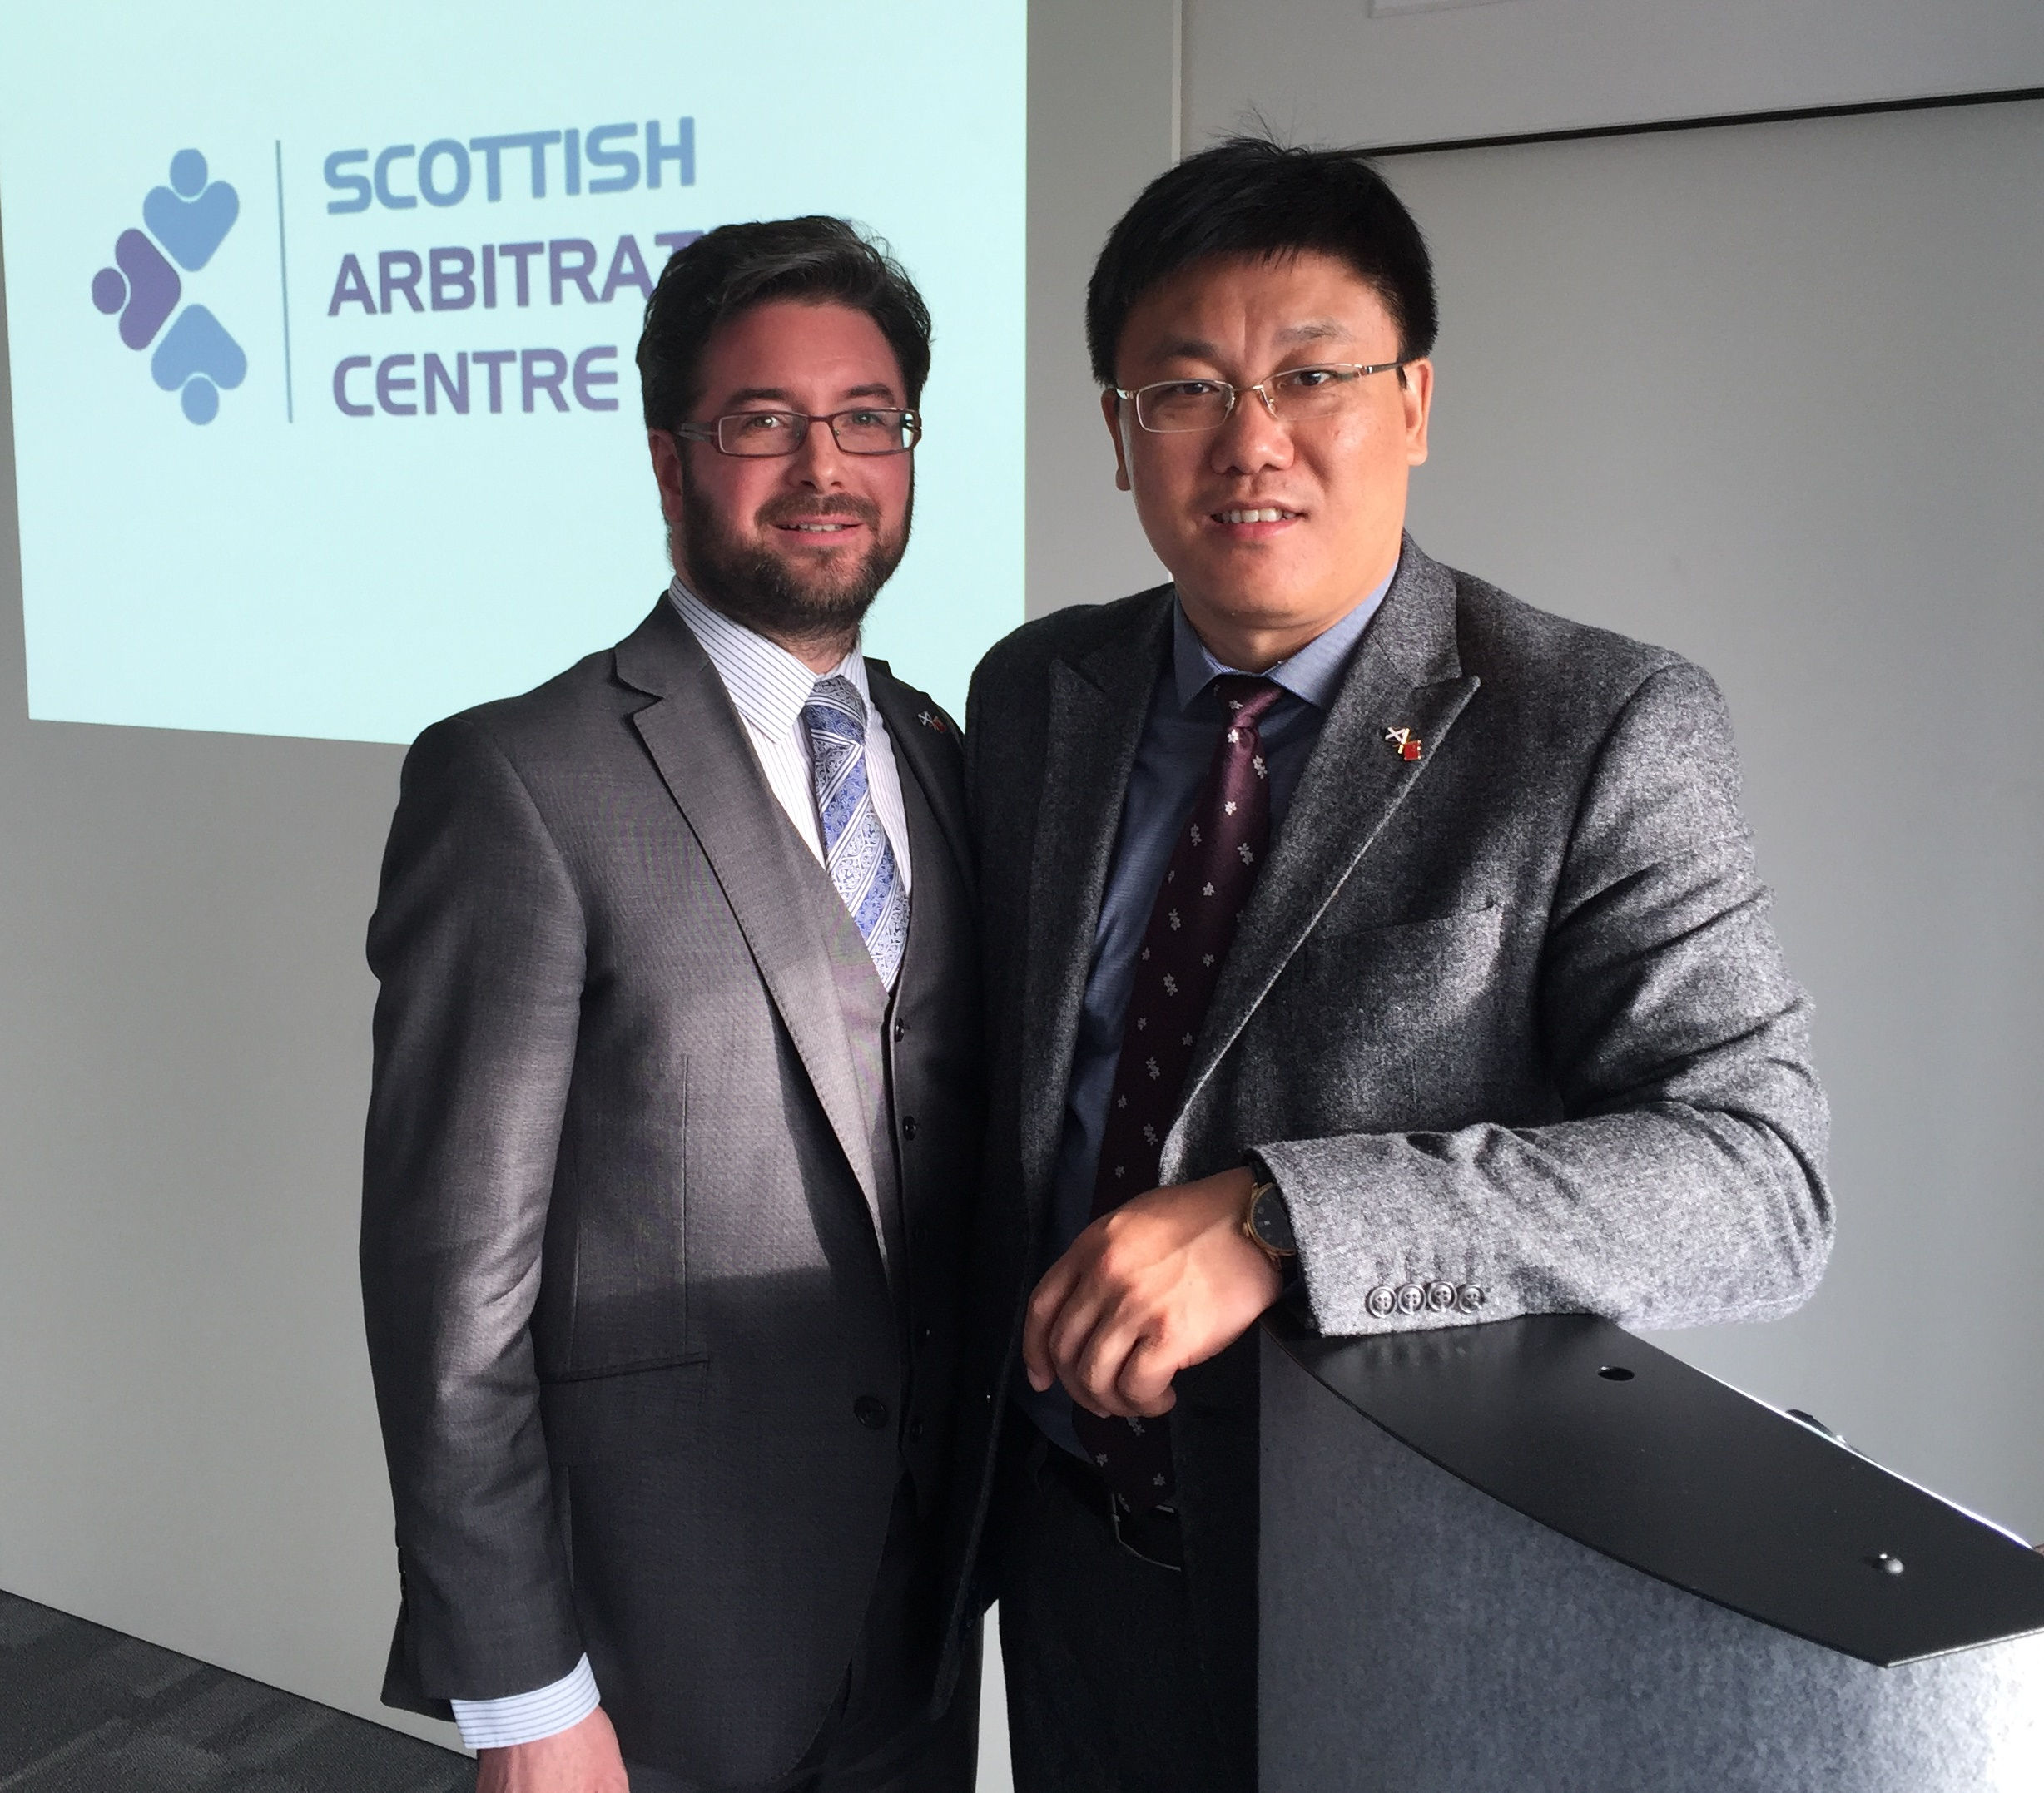 Pictured: Andrew Mackenzie, Chief Executive of the Scottish Arbitration Centre, and Lin Lin Xiaoli , Vice Director of Executive Office, of the Shanghai Municipal Development and Reform Commission.